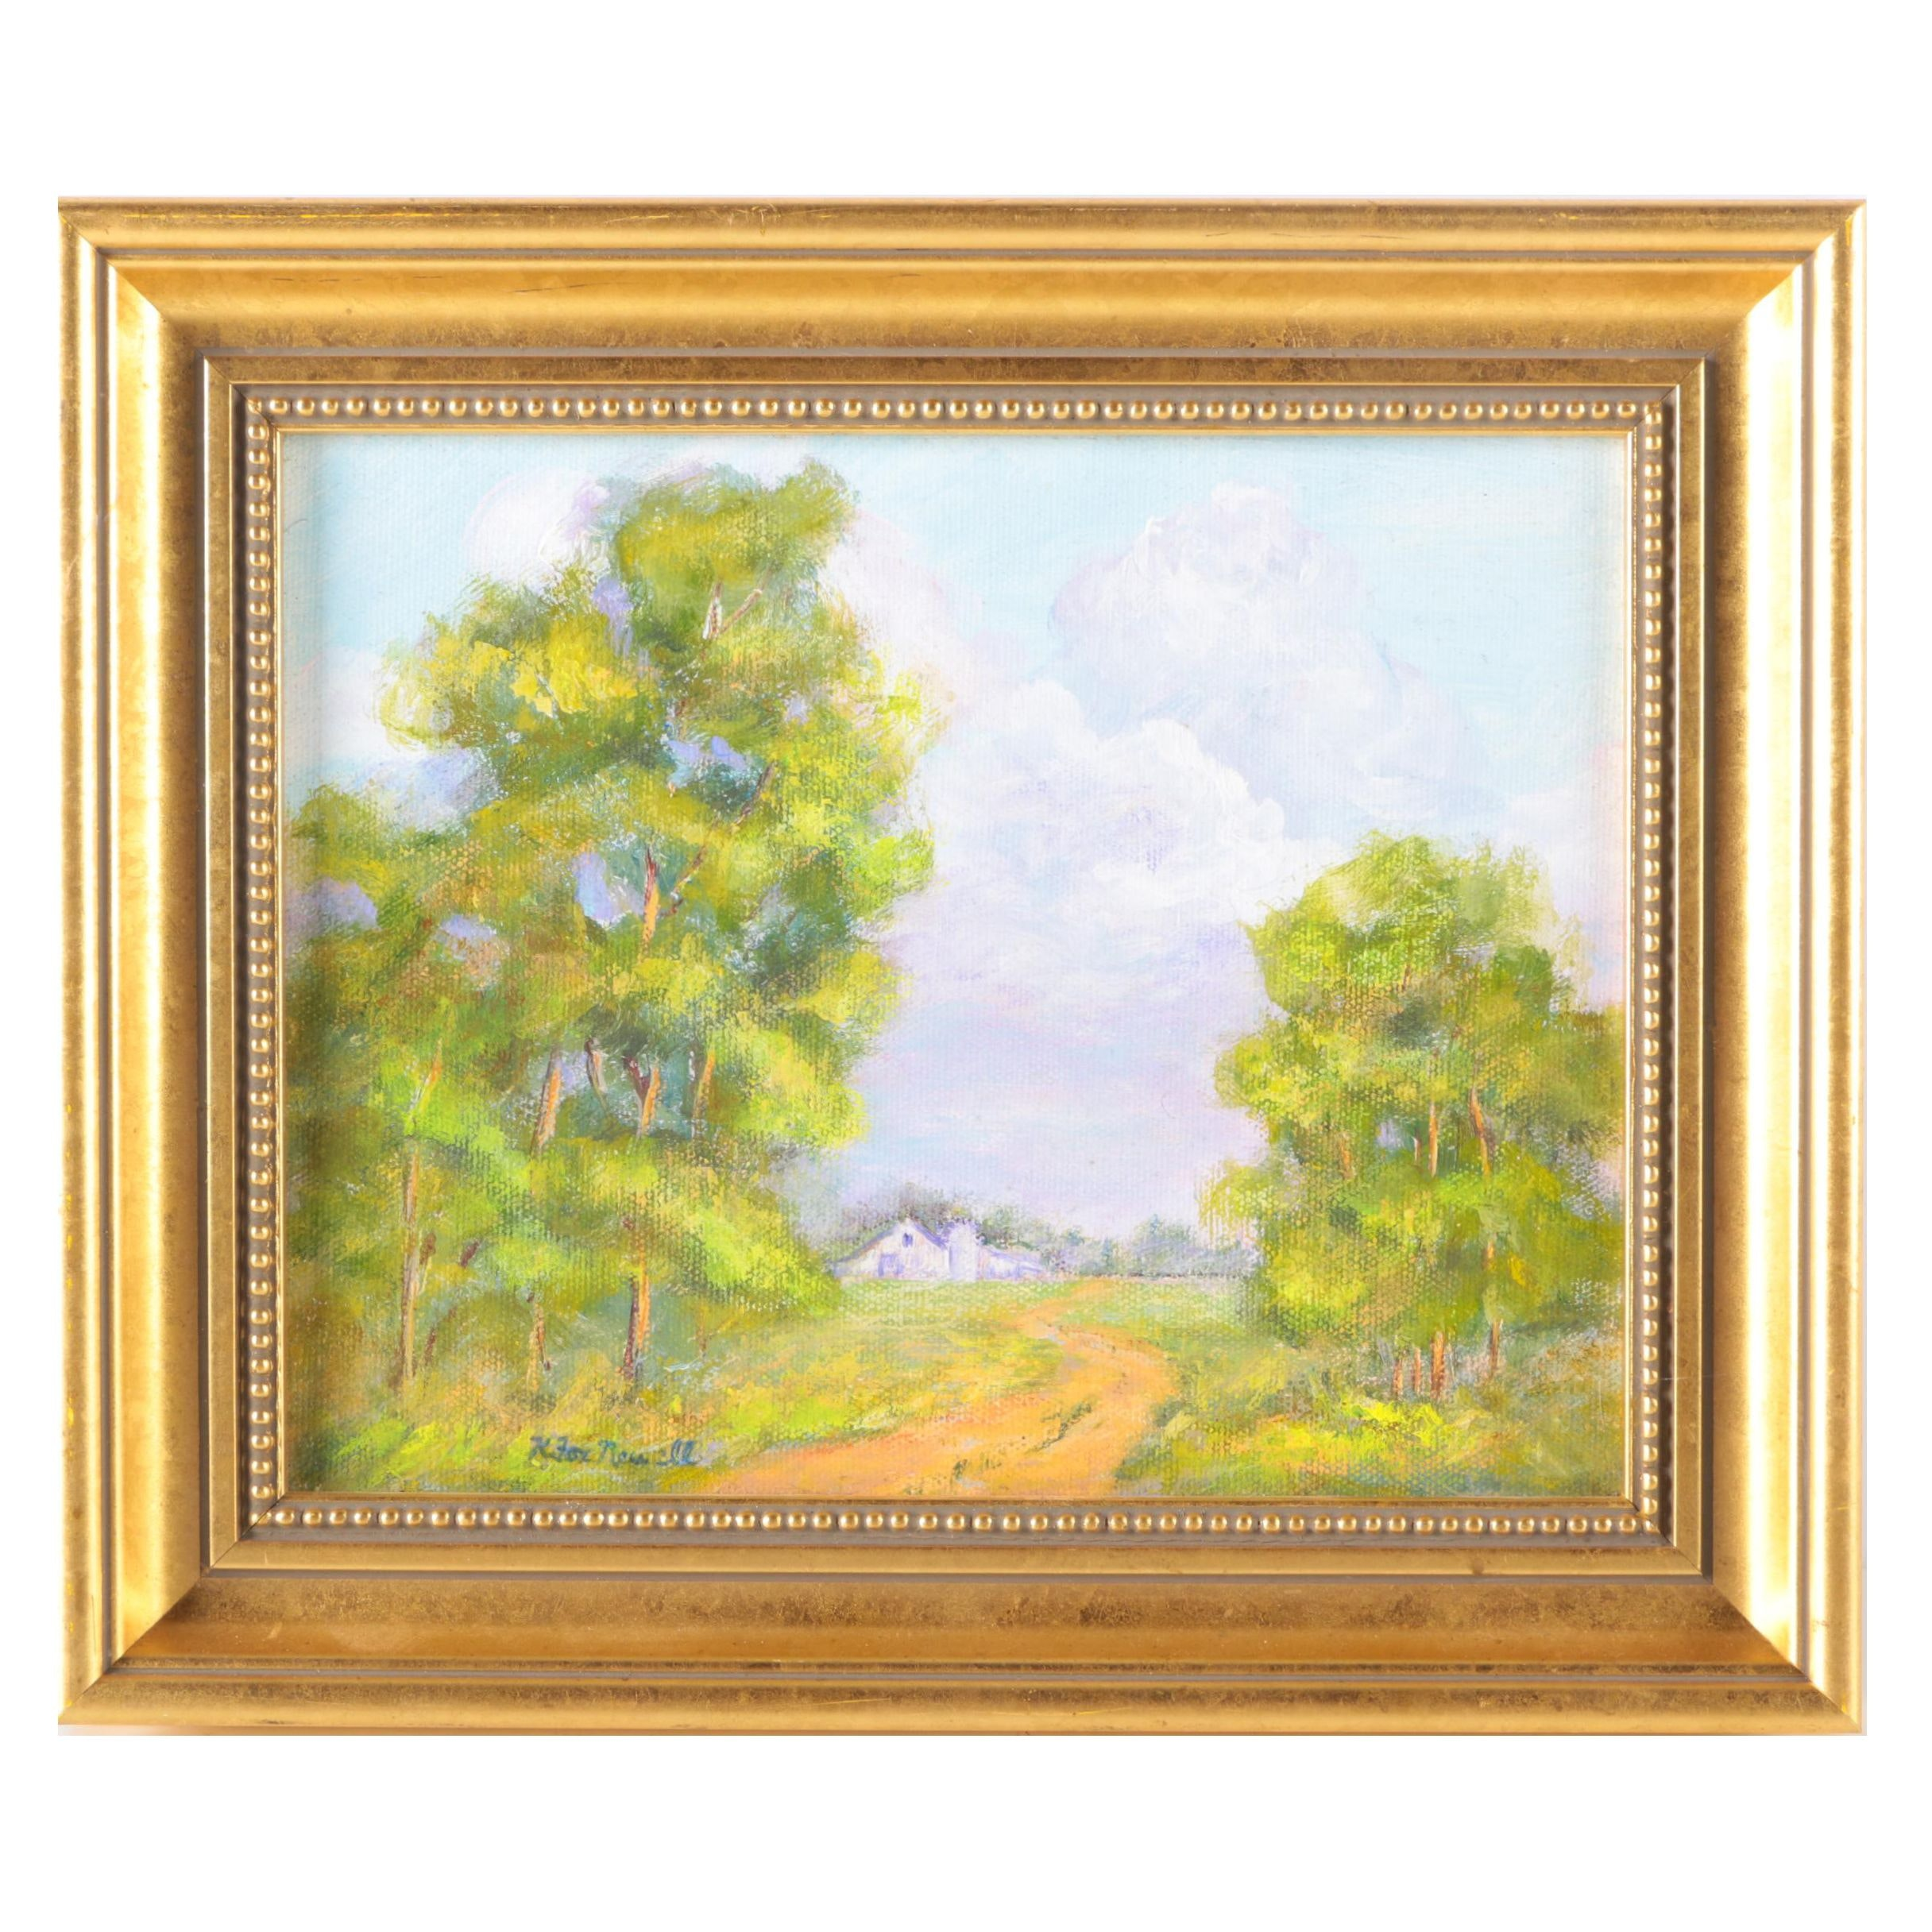 Original Oil Landscape Painting on Canvas